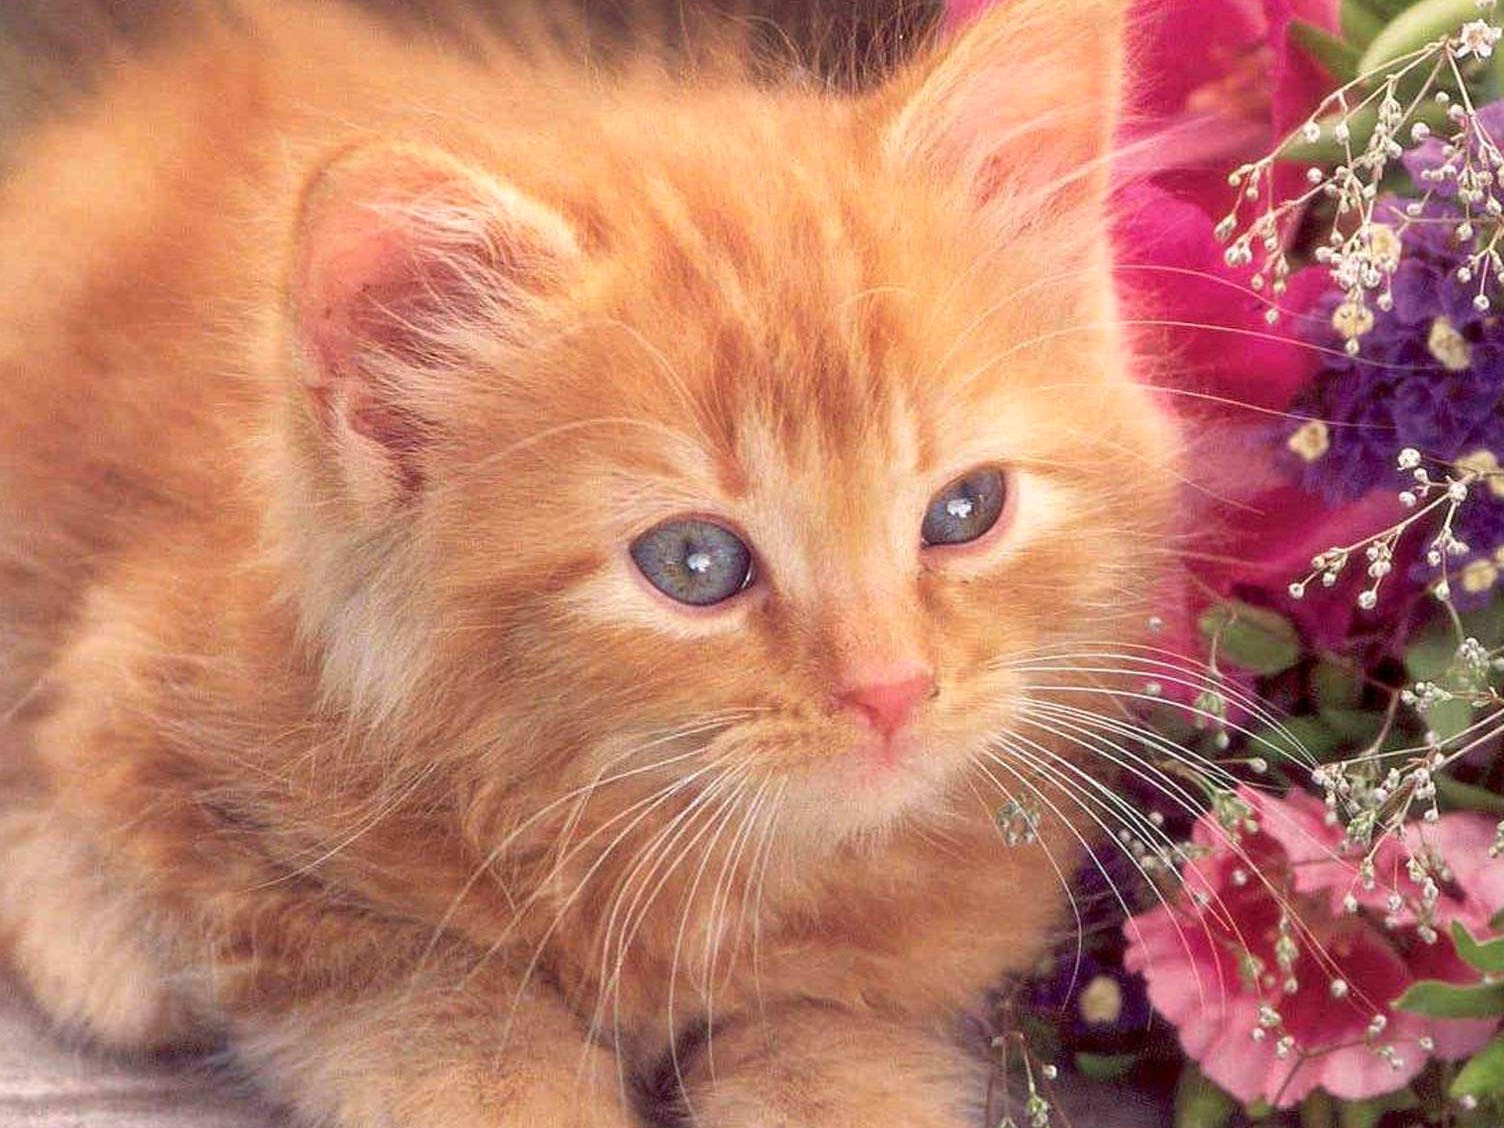 Free Download Amazing Cat Hd Cat Wallpapers Puffy Cats Animal Love Baby 1504x1128 For Your Desktop Mobile Tablet Explore 64 Love Wallpaper Desktop Beautiful Love Wallpapers Love Background Wallpaper